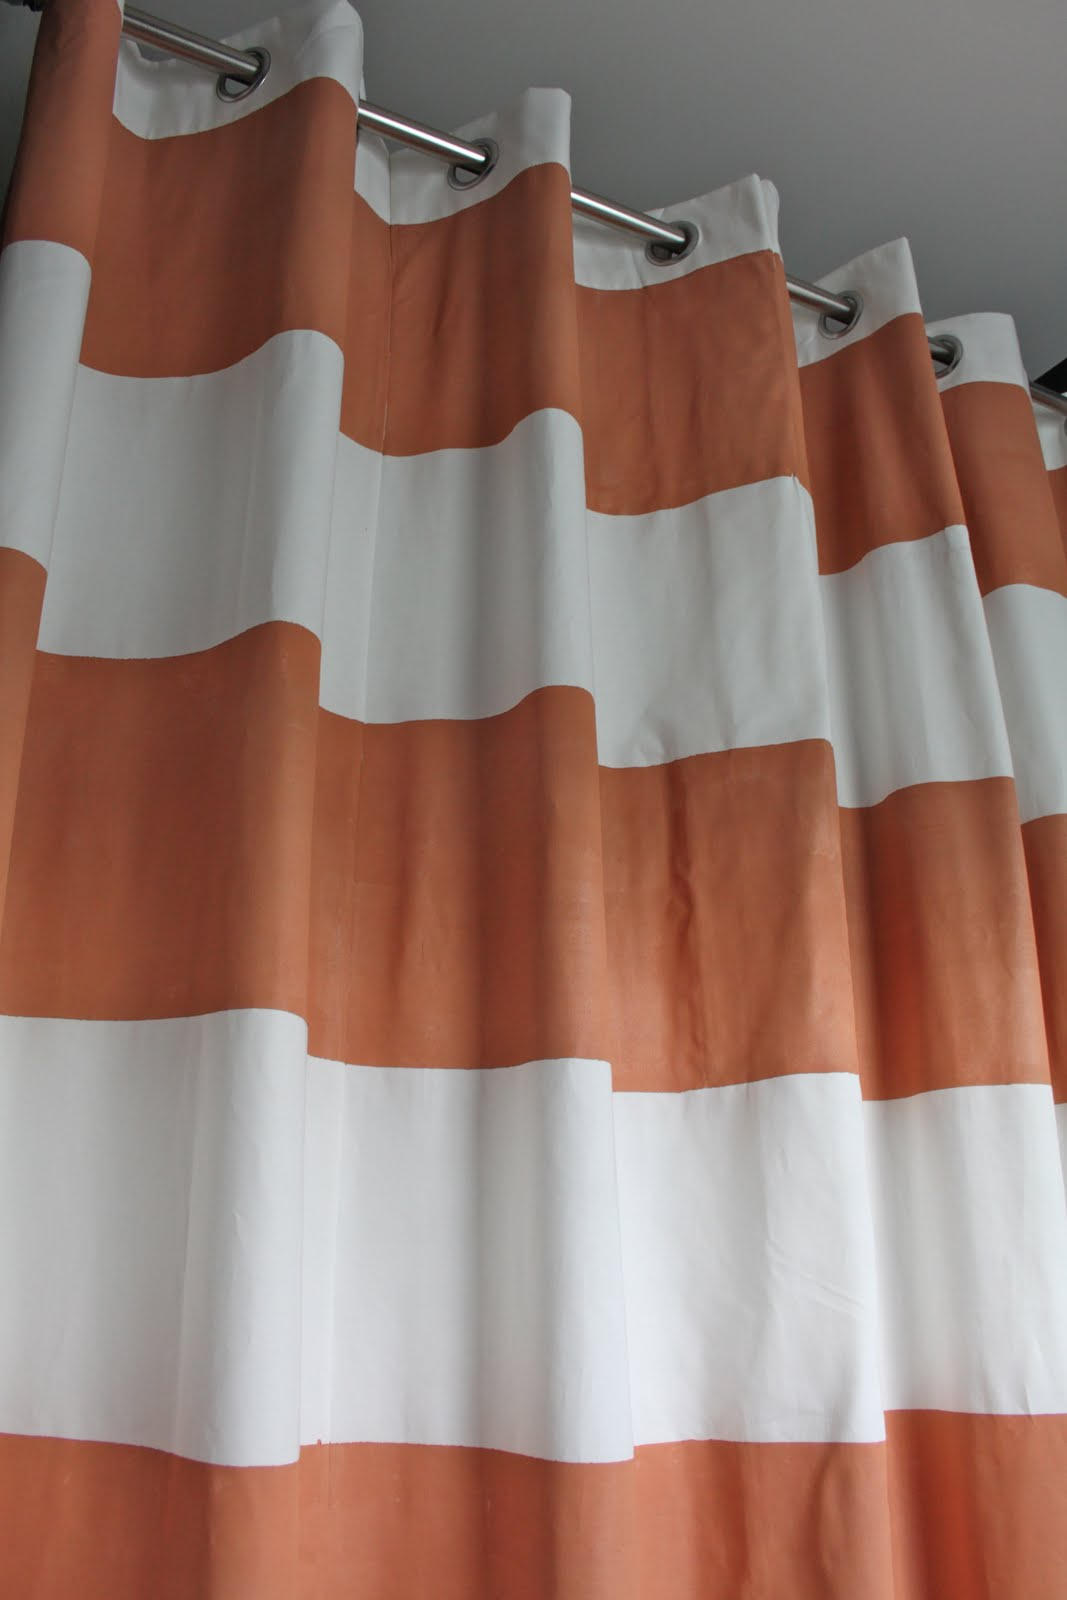 Coral curtains for sale - The Color Reads More Coral Than Terra Cotta In Person My Husband Says It S The Biggest Shower Curtain He S Ever Seen But I Love It